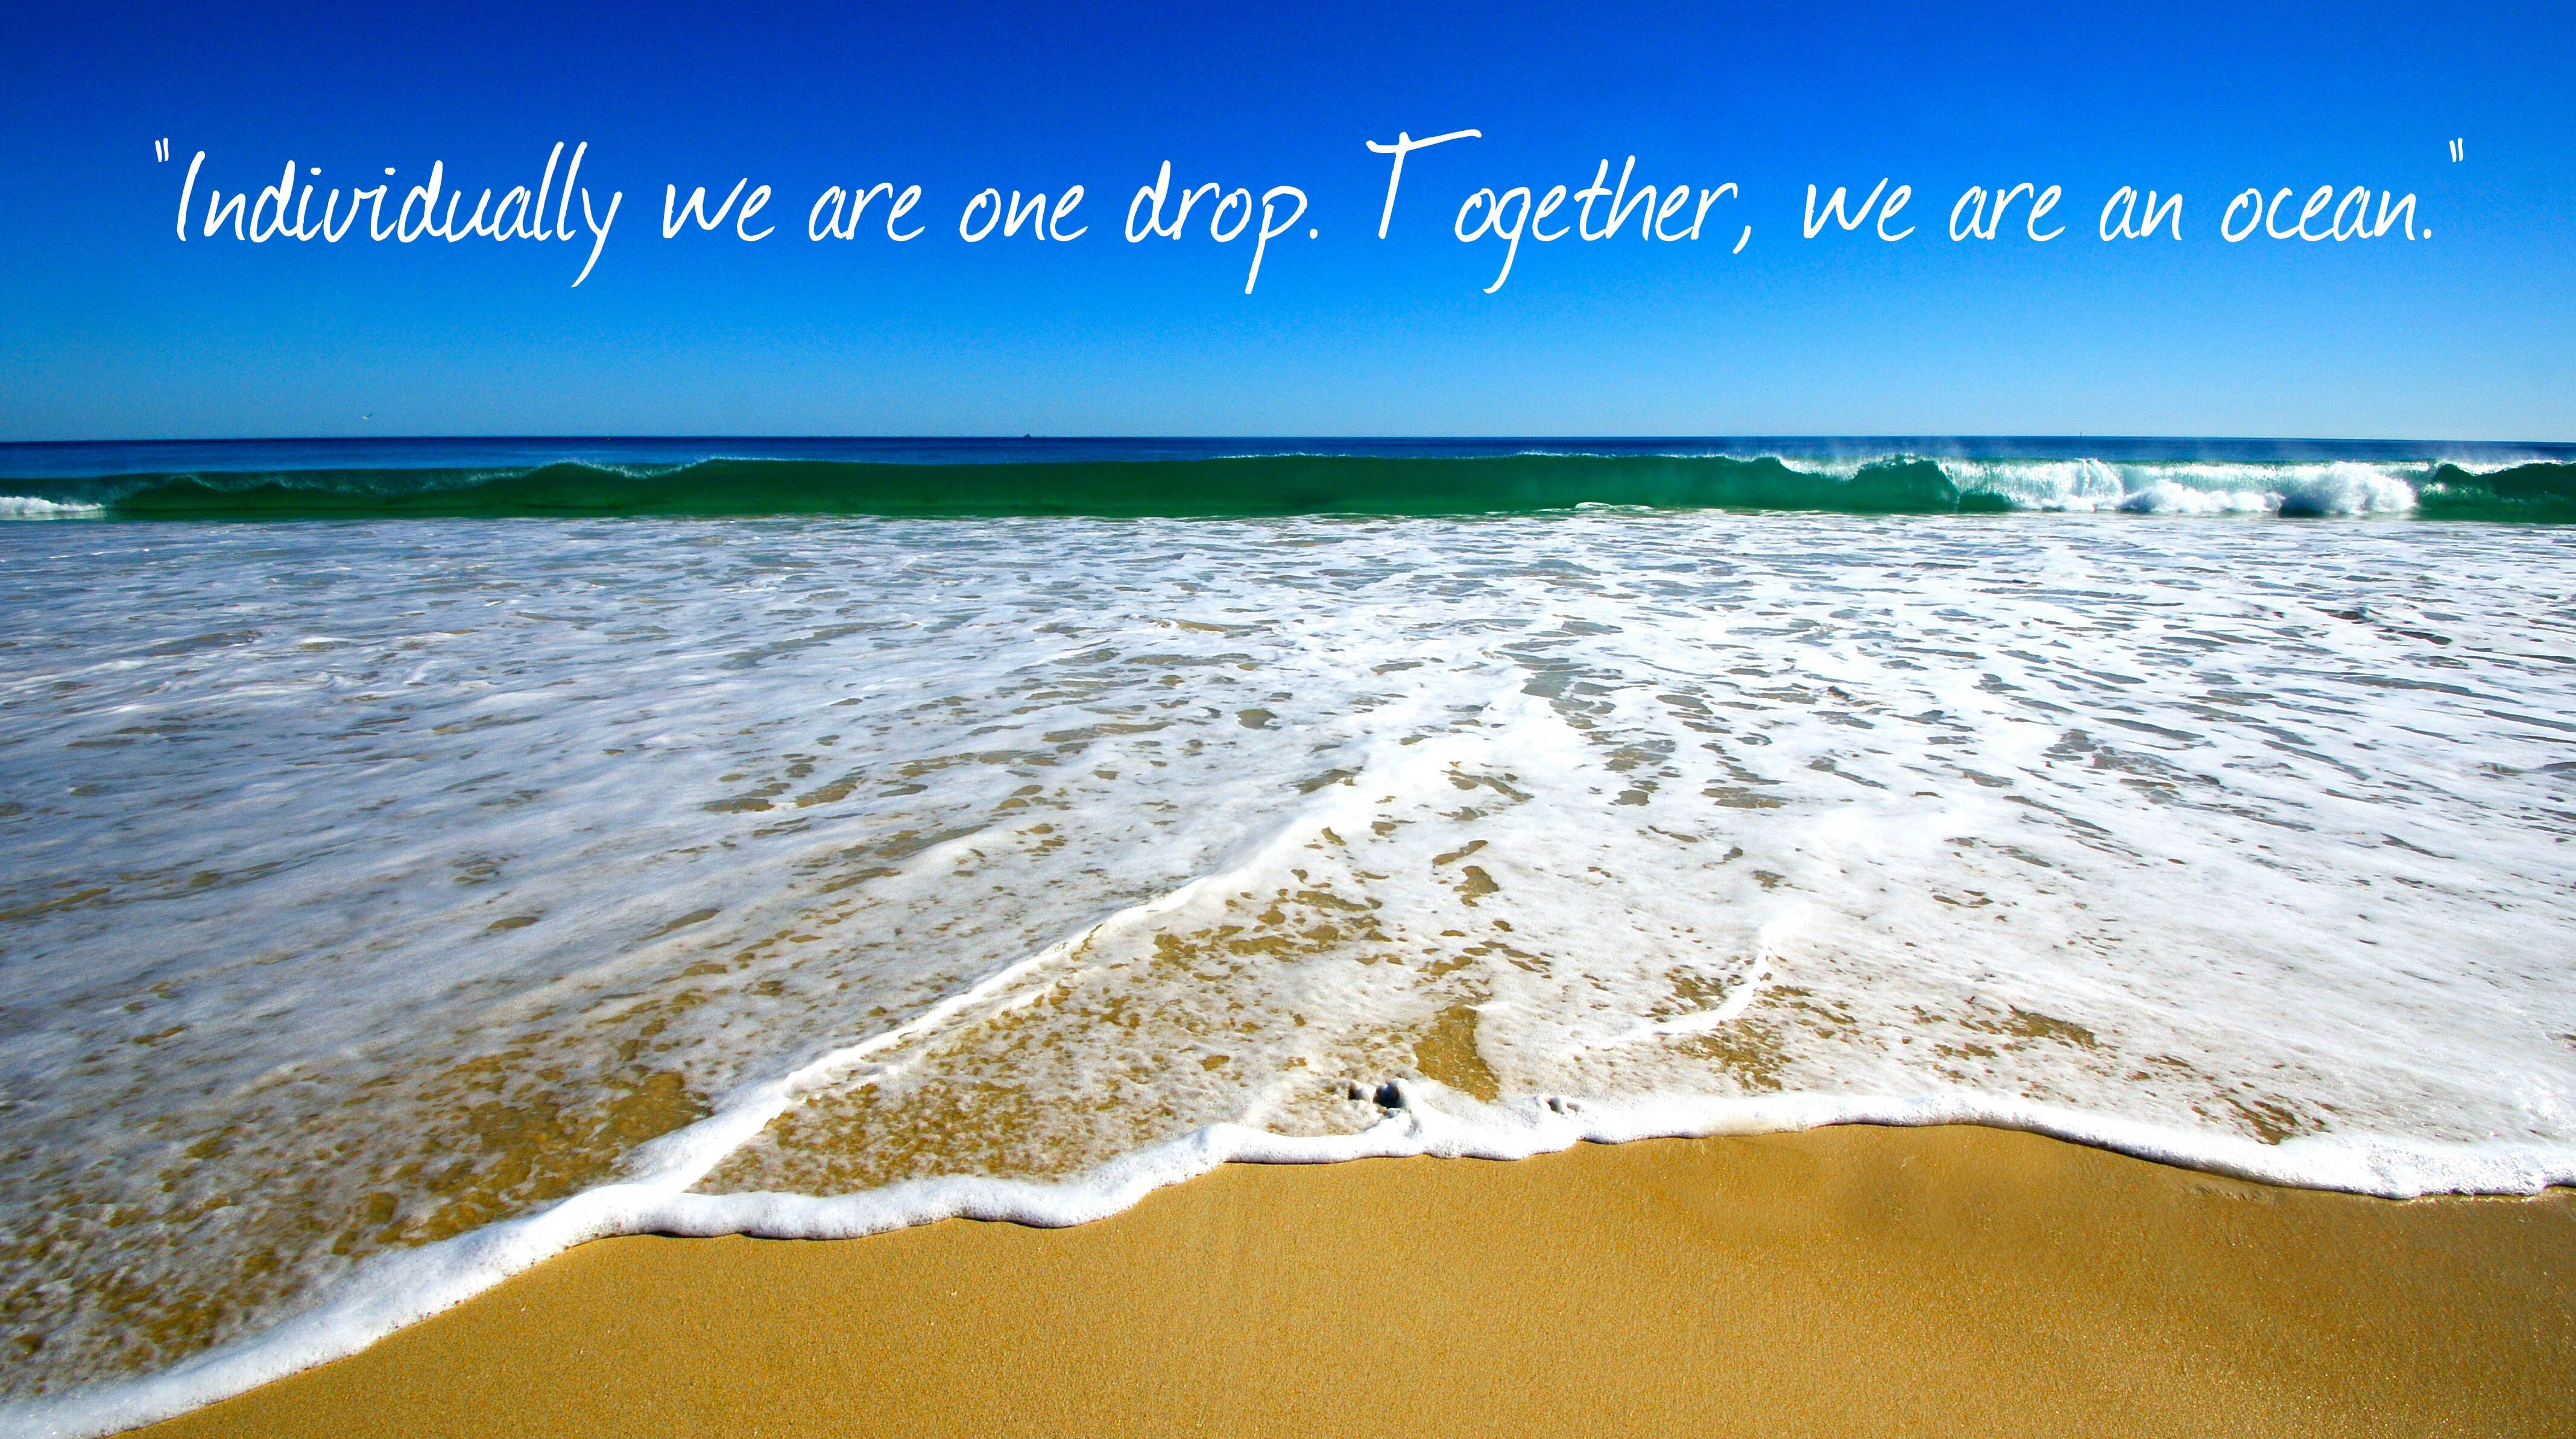 INDIVIDUALLY WE ARE ONE DROP. TOGETHER WE MAKE AN OCEAN.